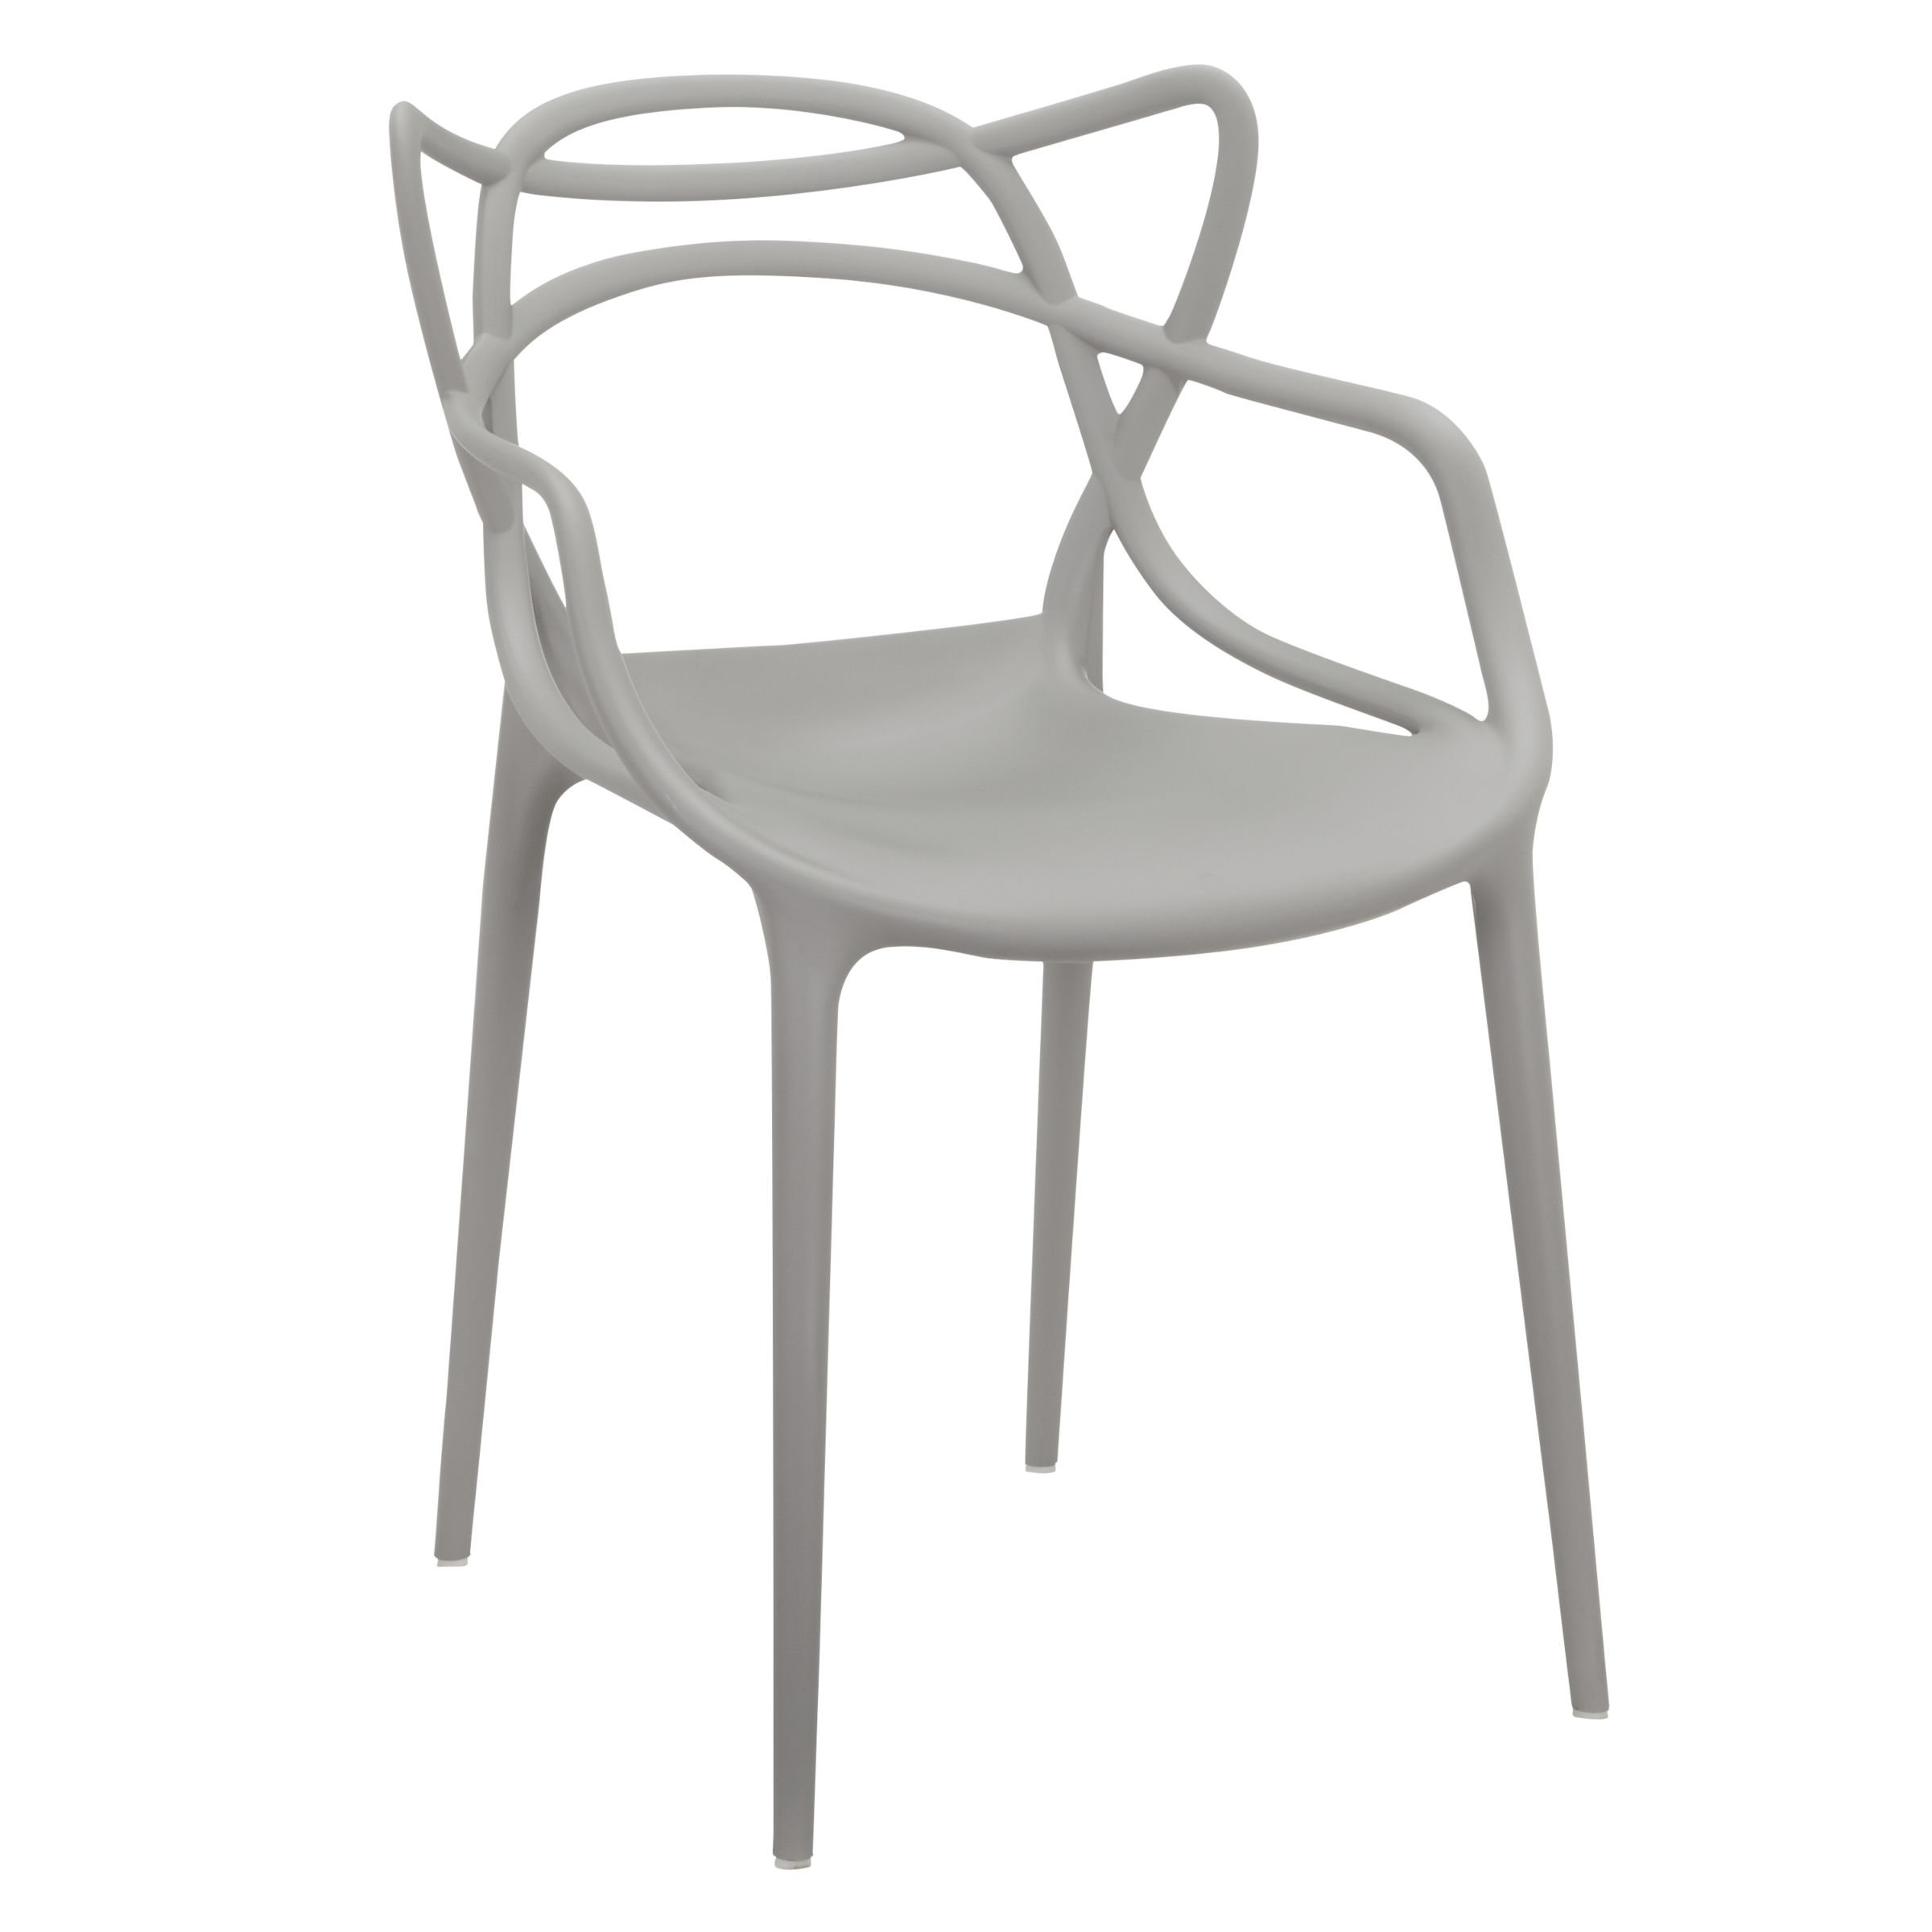 Philipp Stark Philippe Starck For Kartell Masters Chair At John Lewis